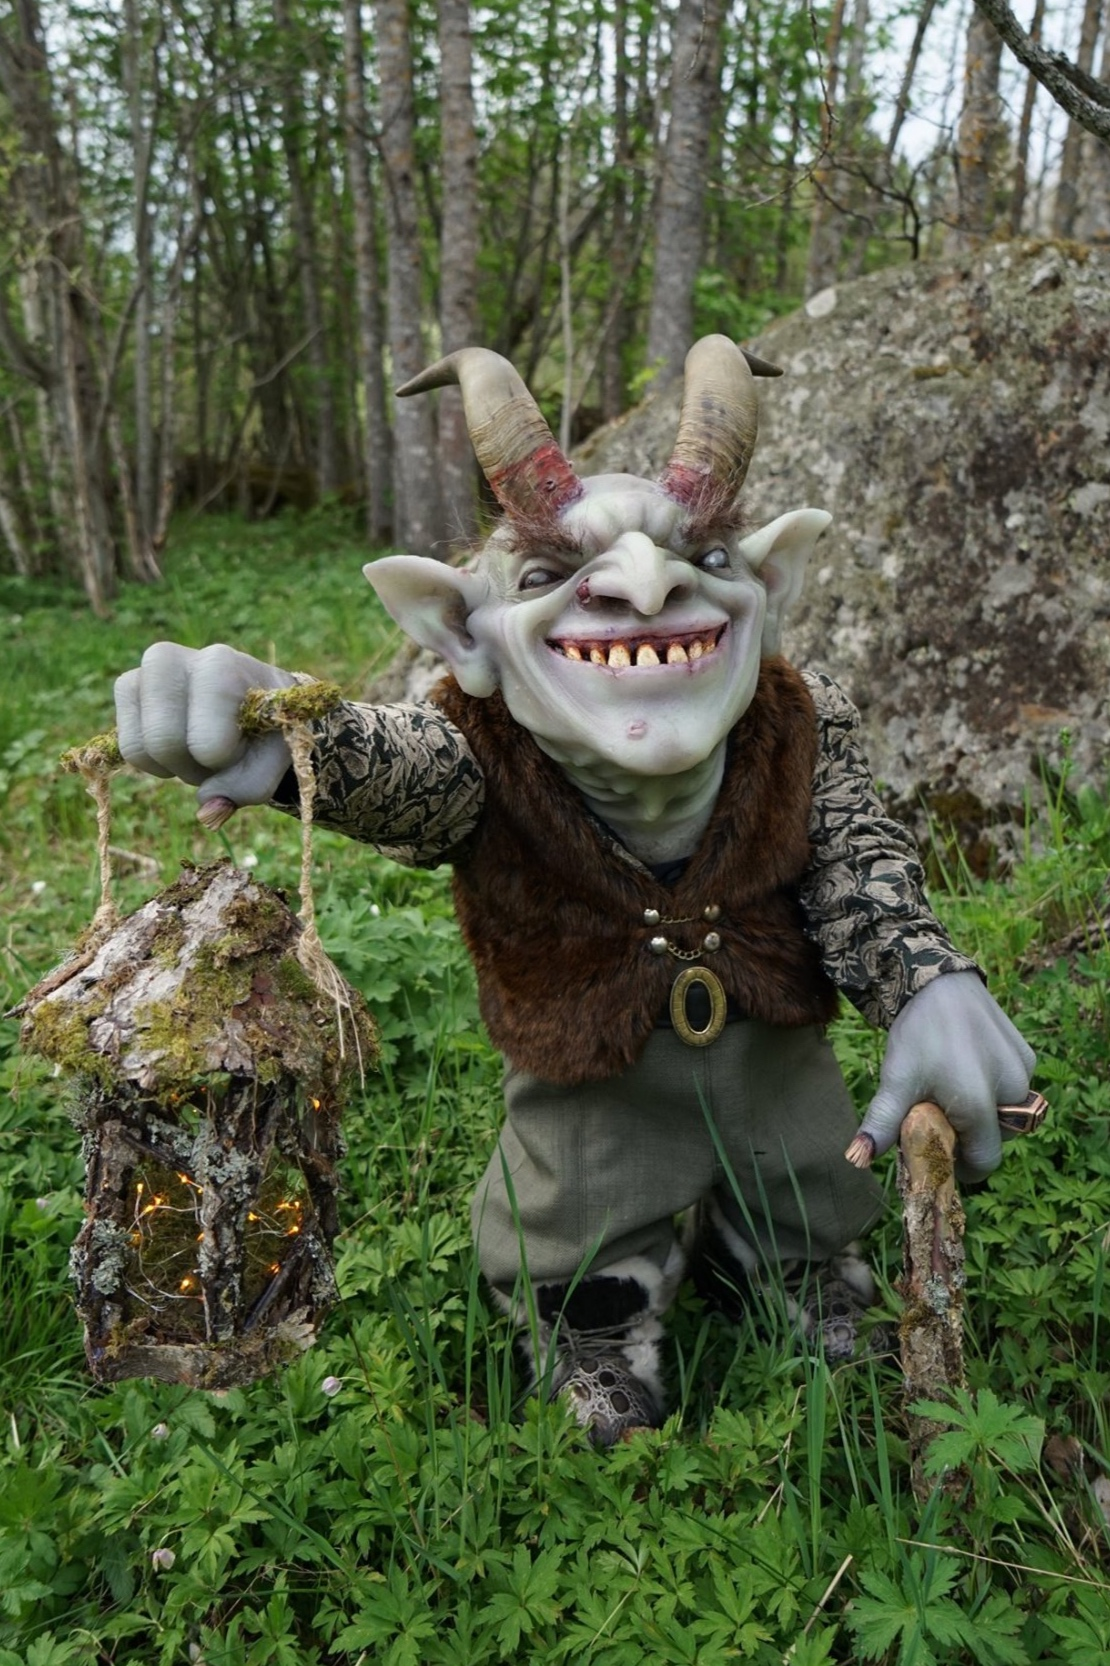 Gunnar The Goblin - Created at House of Helsinglight by students and professionals in a joint collaboration.